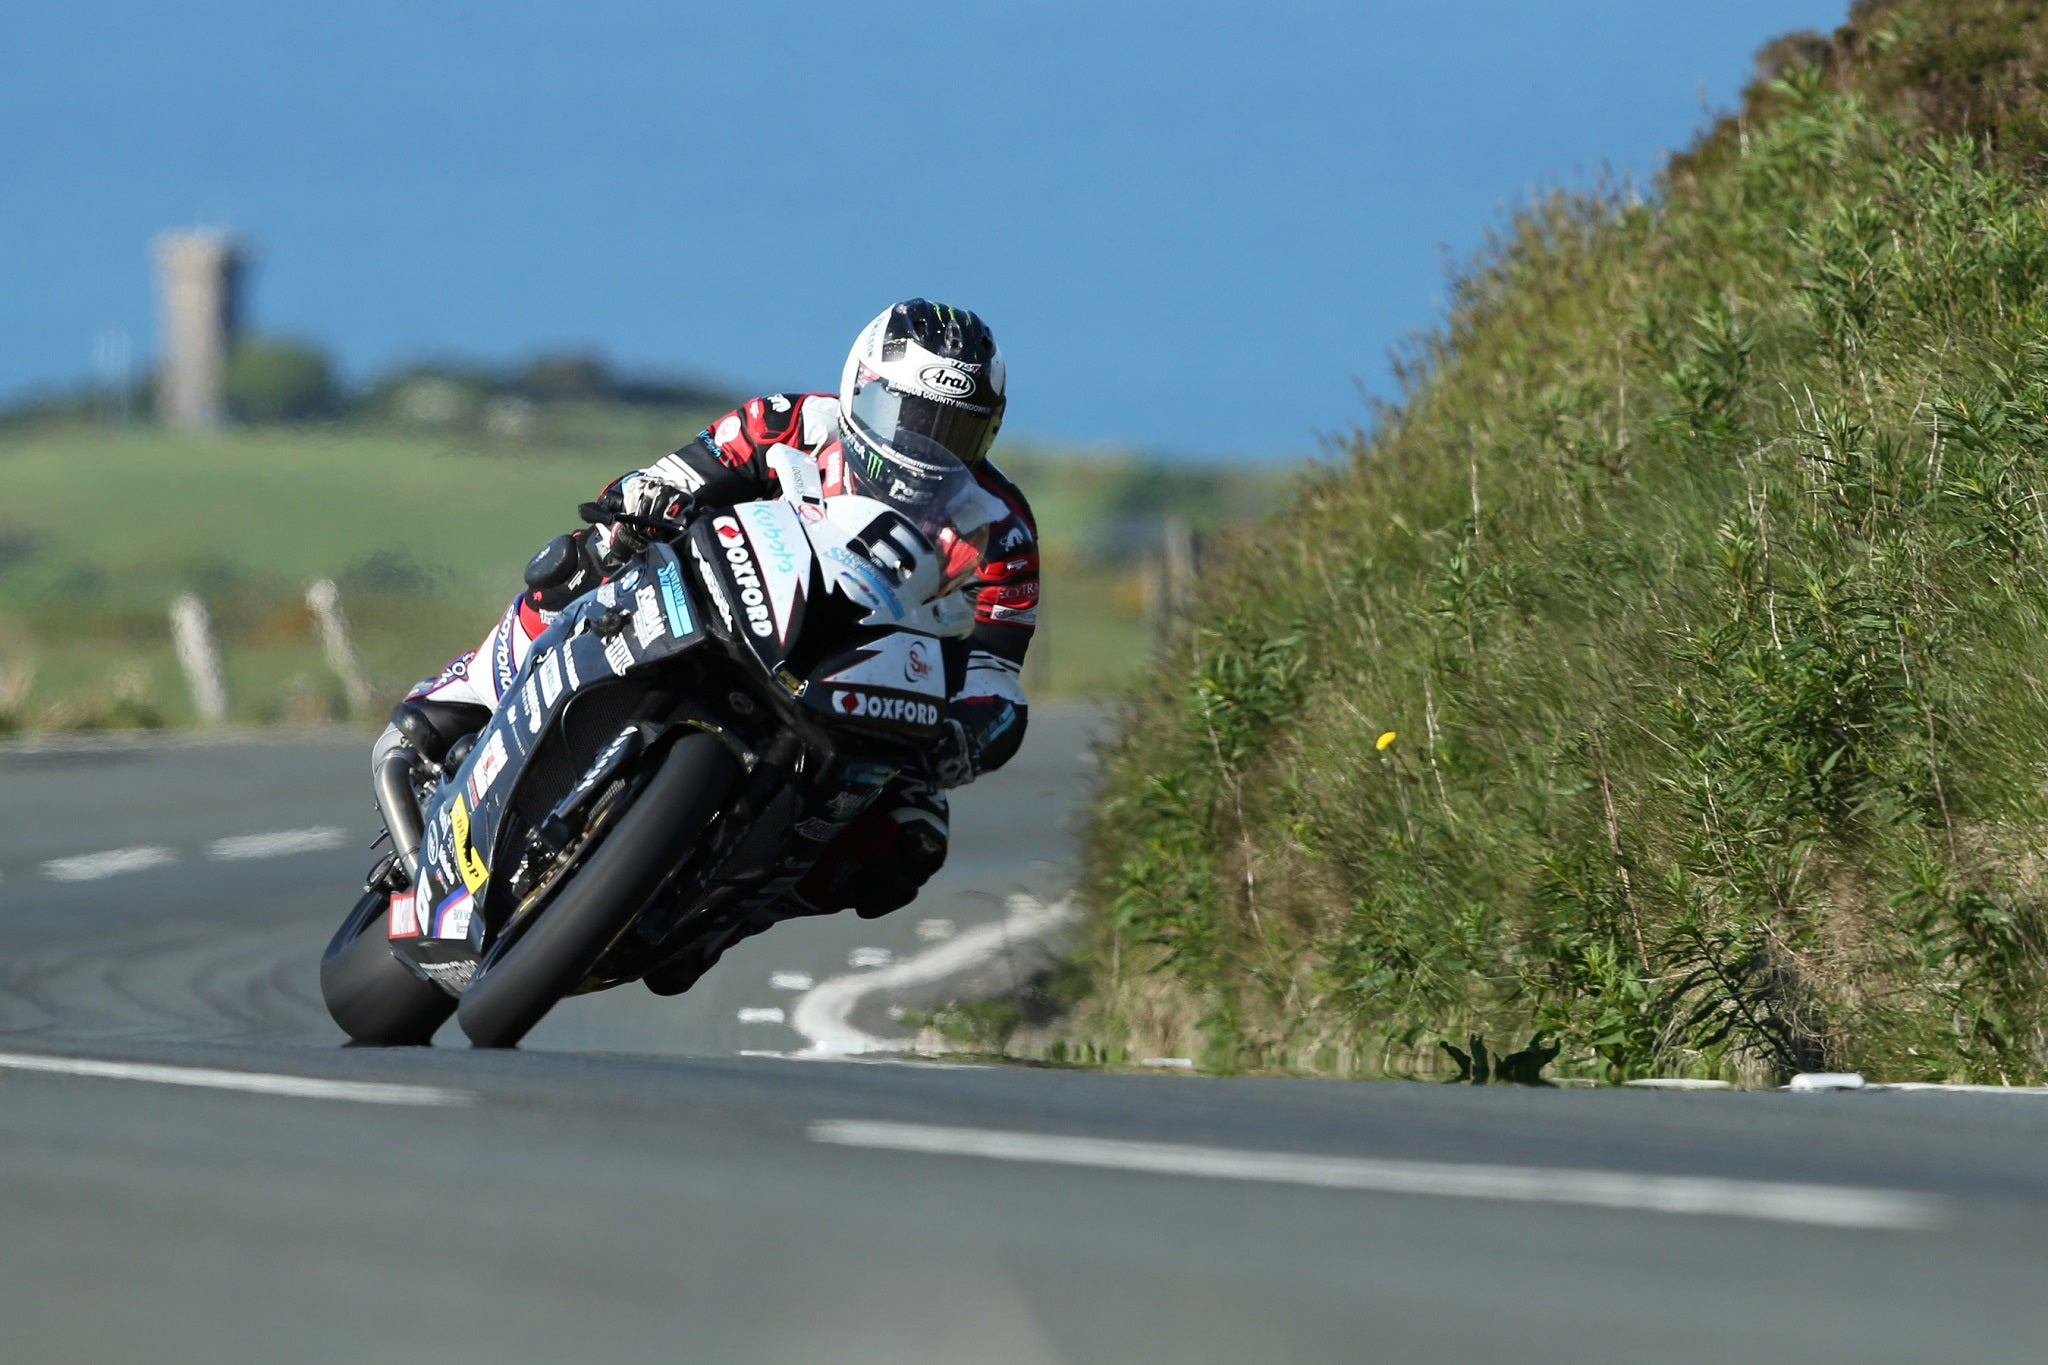 Isle of Man TT 2016: Michael Dunlop breaks lap record to seal dominant RST Superbike victory